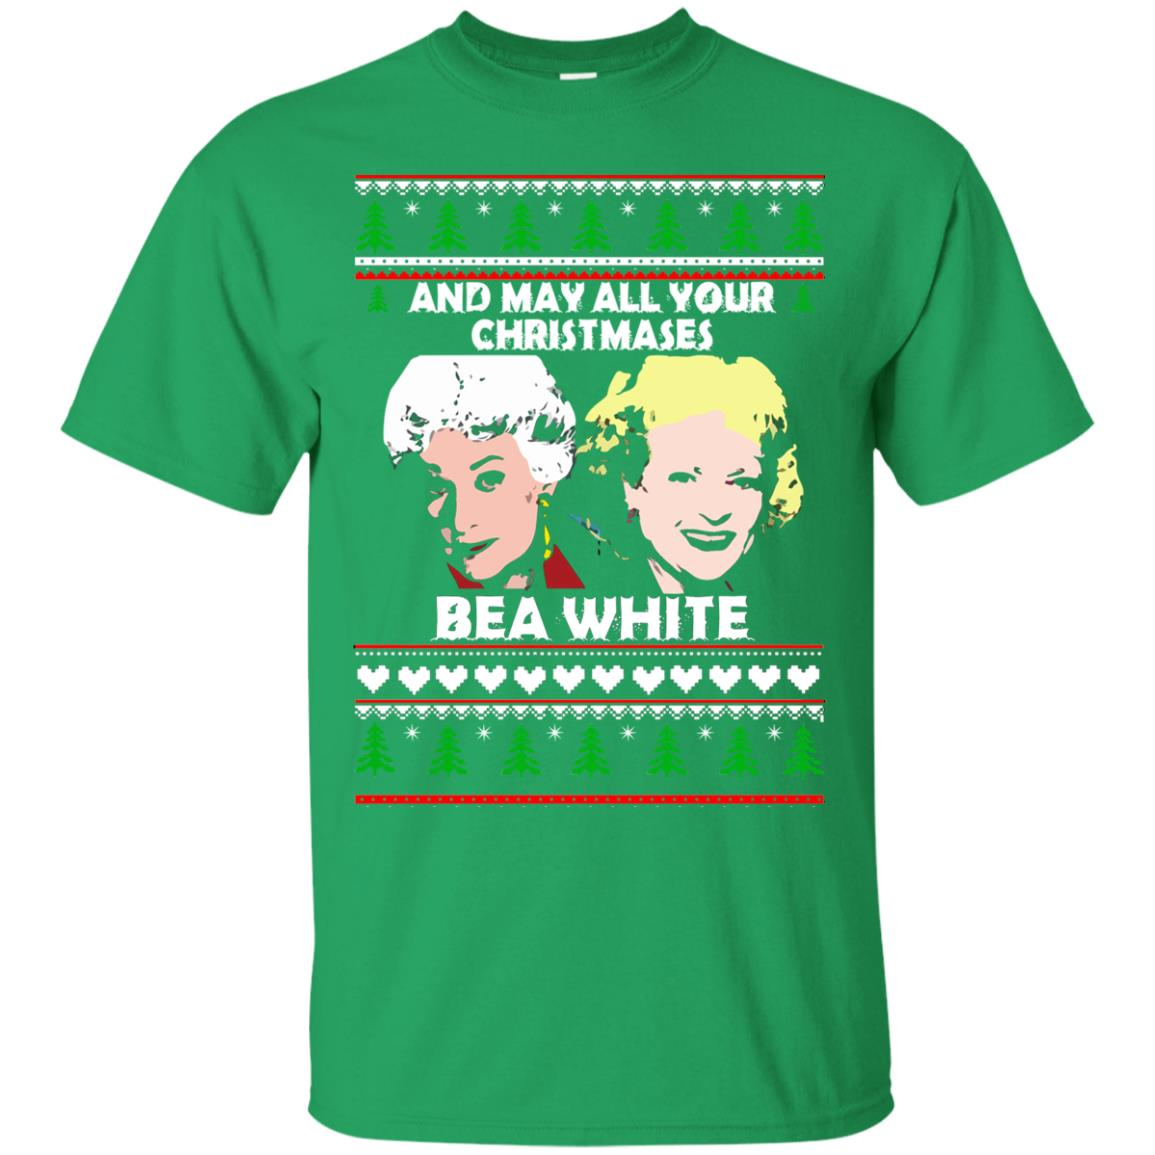 image 2938 - Golden Girls: May all your Christmases Bea White Ugly Sweater, Shirt